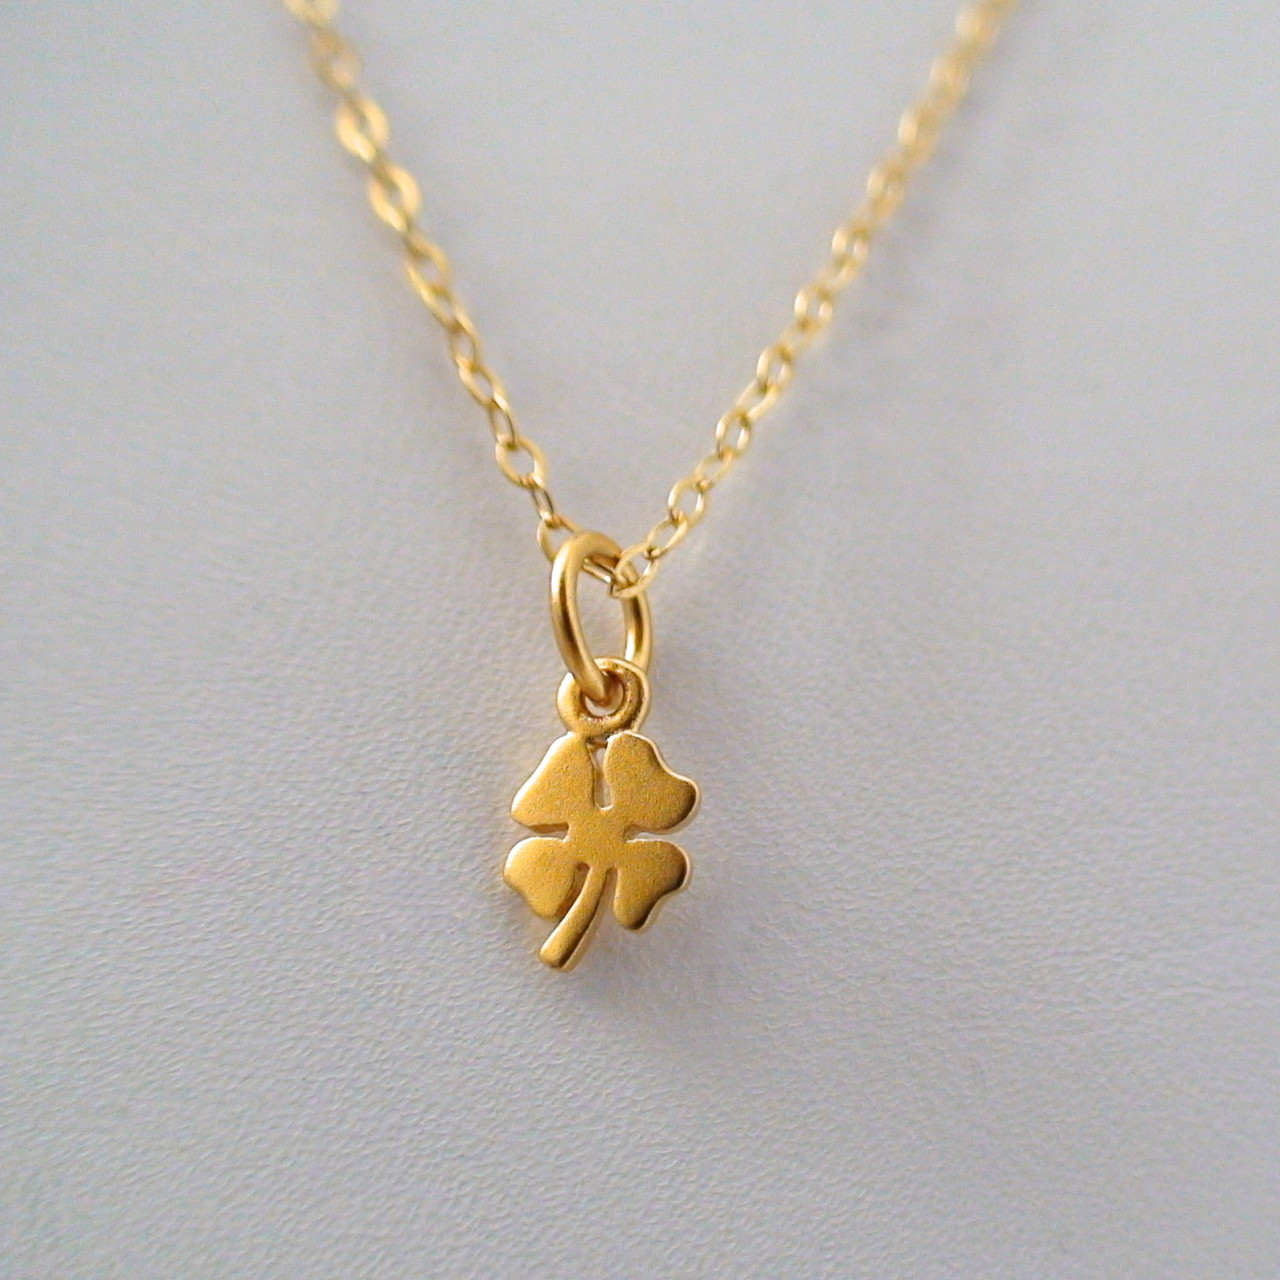 silver leaf flower sterling necklace gold jewellery pendant clover star products style little nunu rose related four boho img